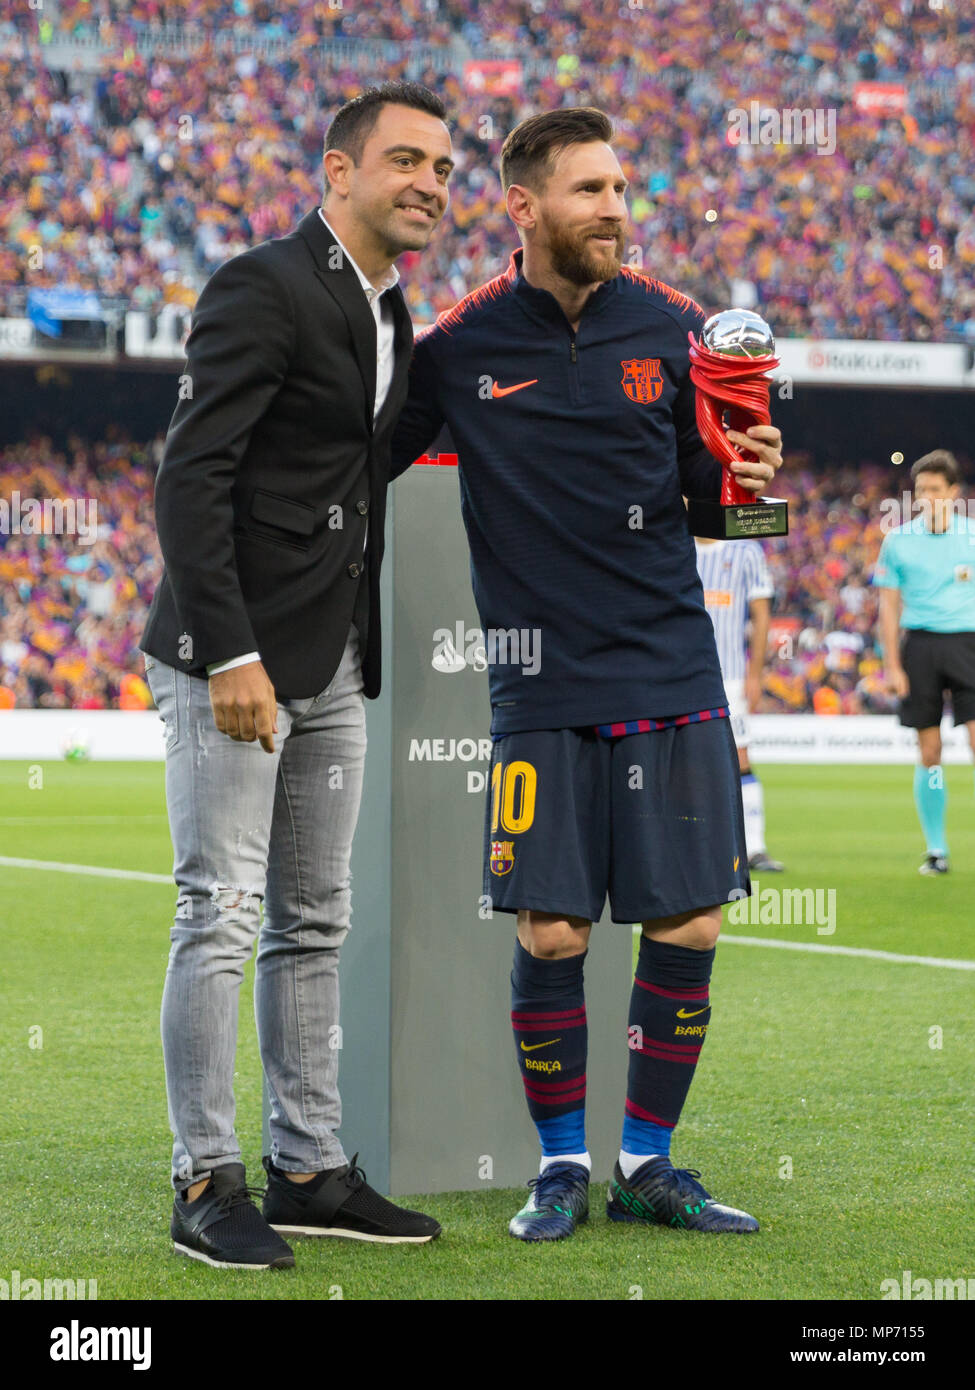 Barcelona, 20th May: Xavi with Messi during the 2017/2018 LaLiga Santander Round 38 game between FC Barcelona and Real Sociedad at Camp Nou on May 20, 2018 in Barcelona, Spain. Credit: UKKO Images/Alamy Live News Stock Photo